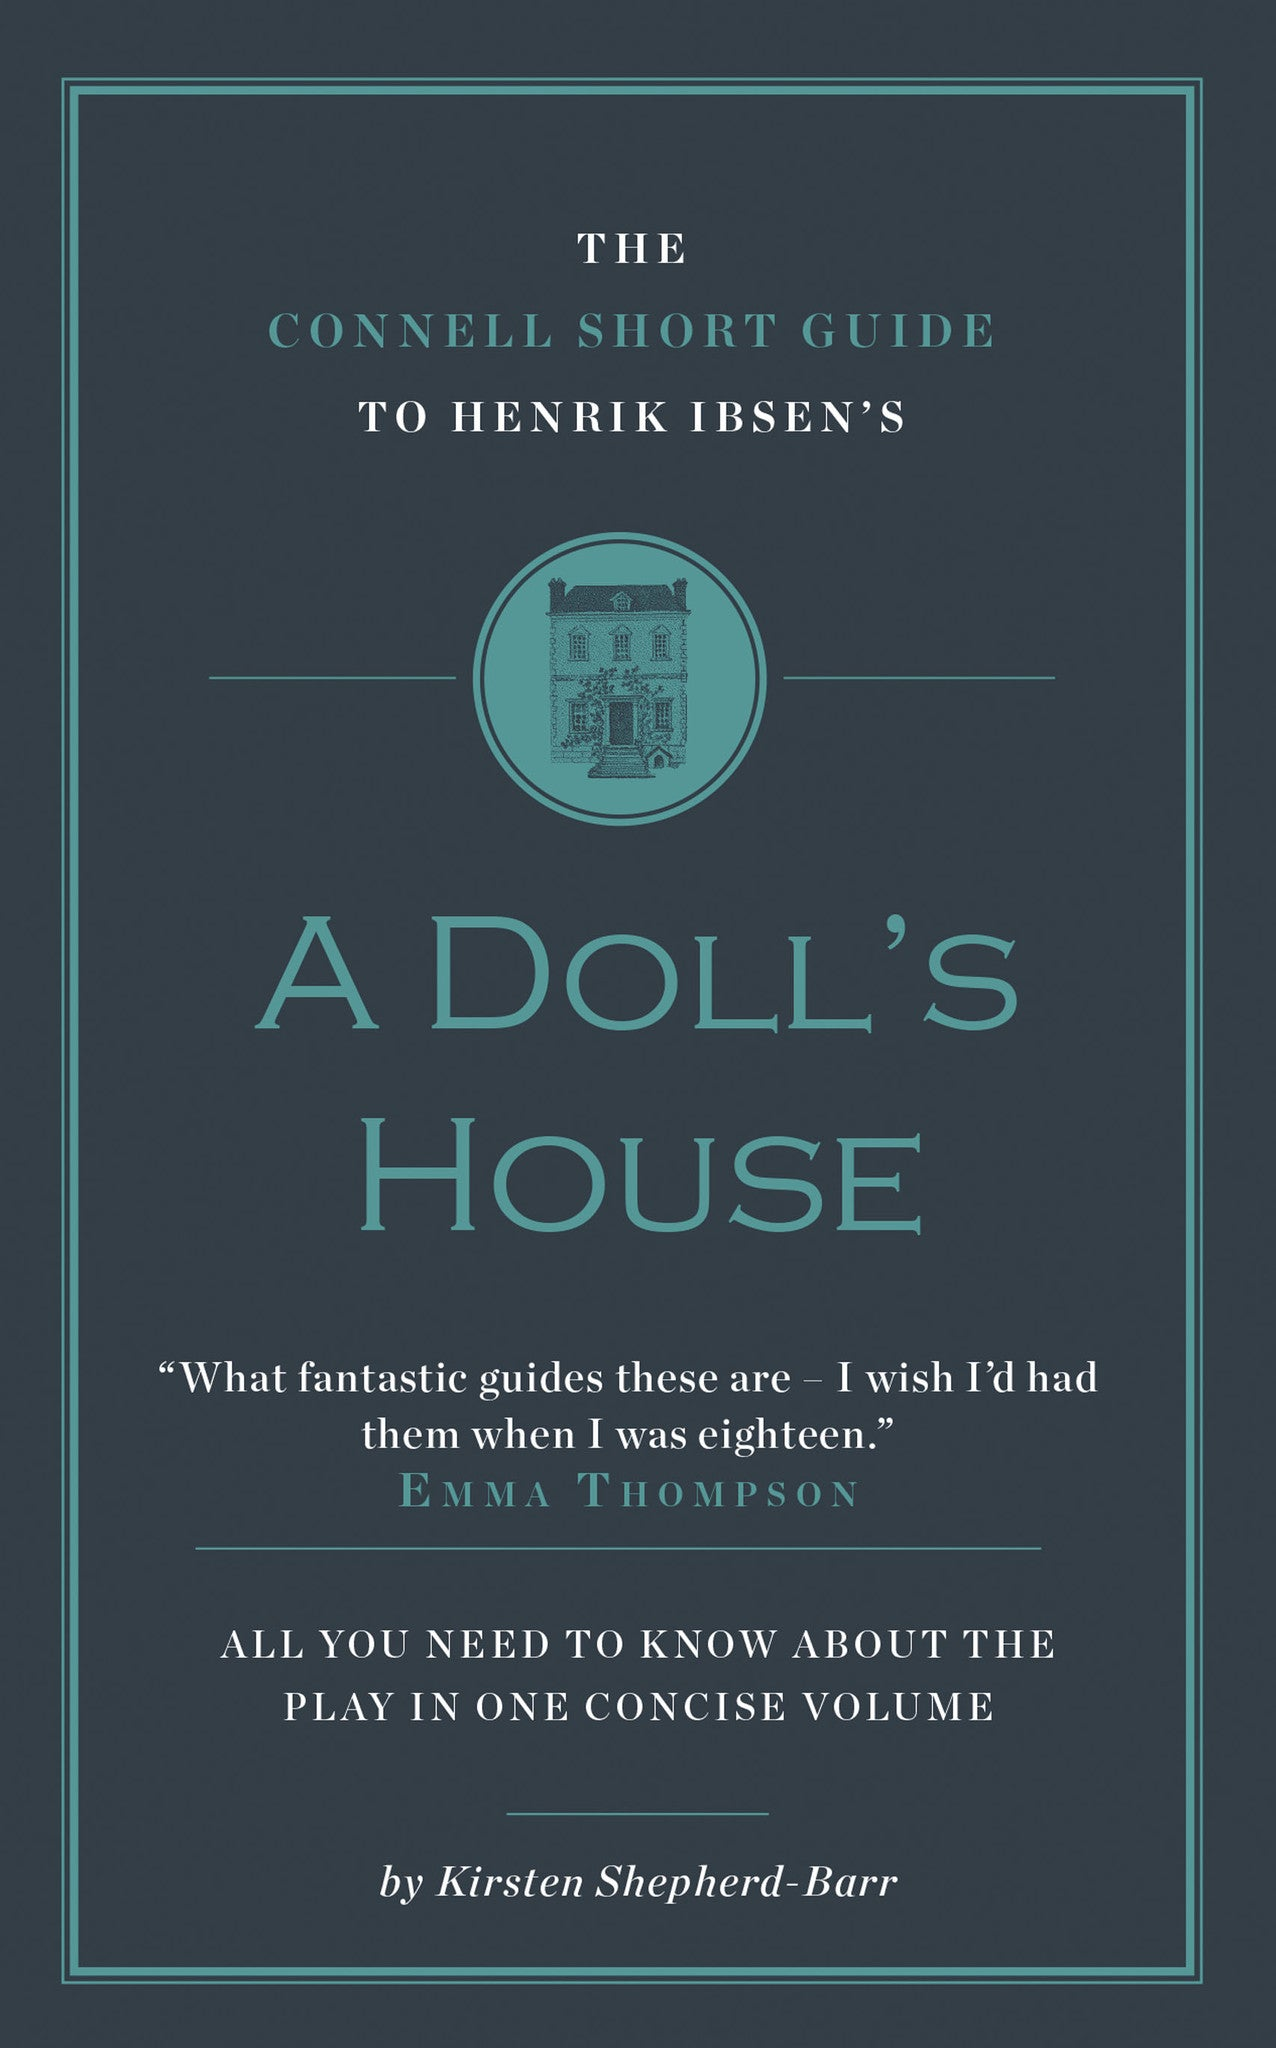 henrik ibsen s a doll s house short study guide connell guides henrik ibsen s a doll s house short study guide